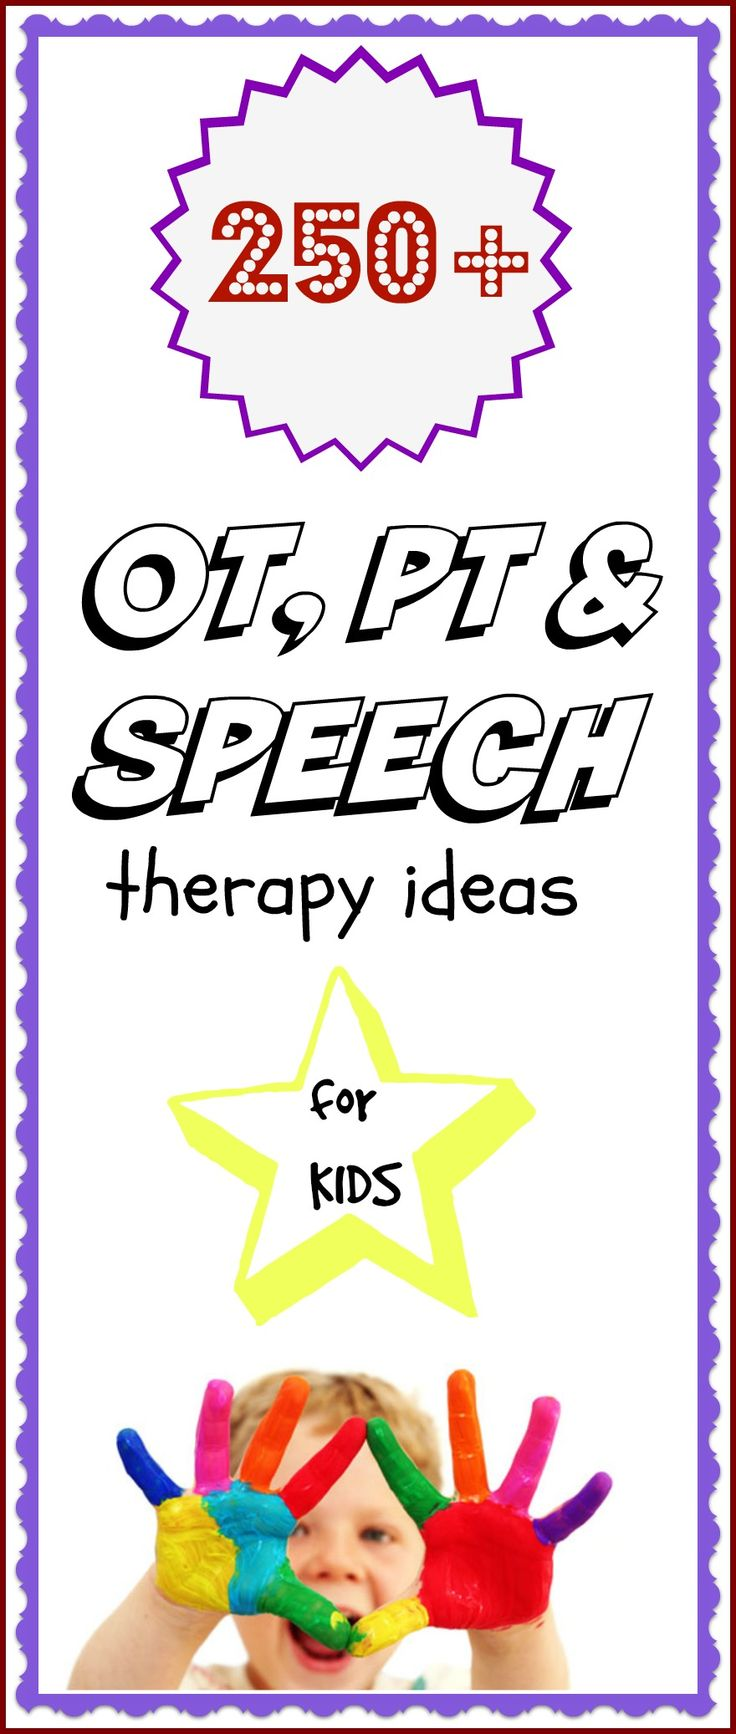 250+ OT, PT, & Speech ideas for kids